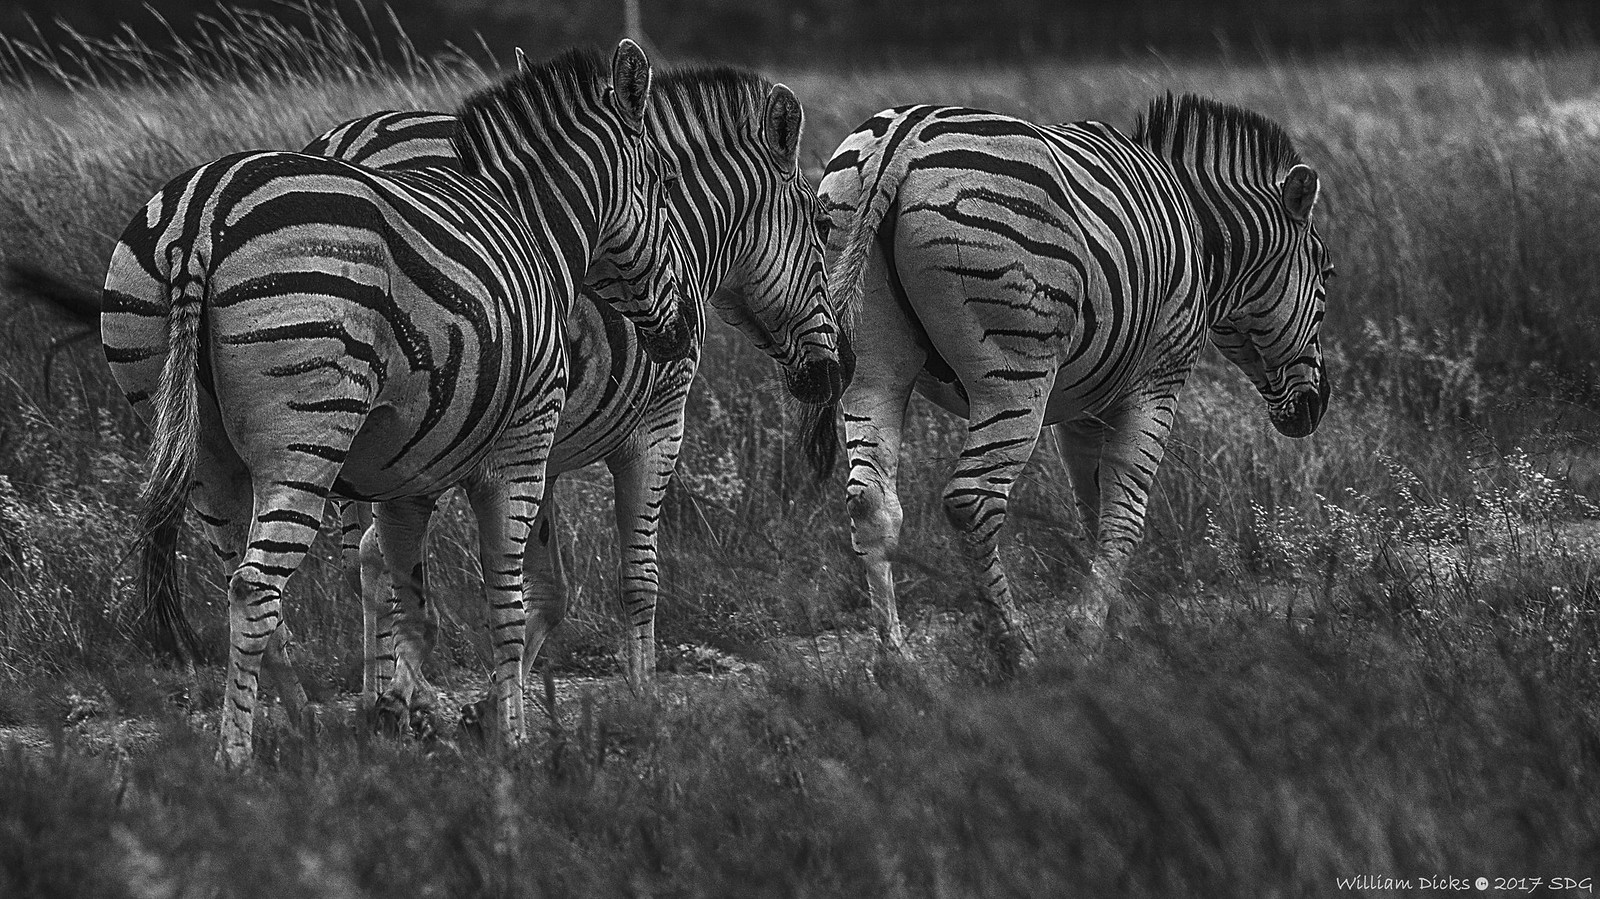 The Three Stooges, uhm, zebras!